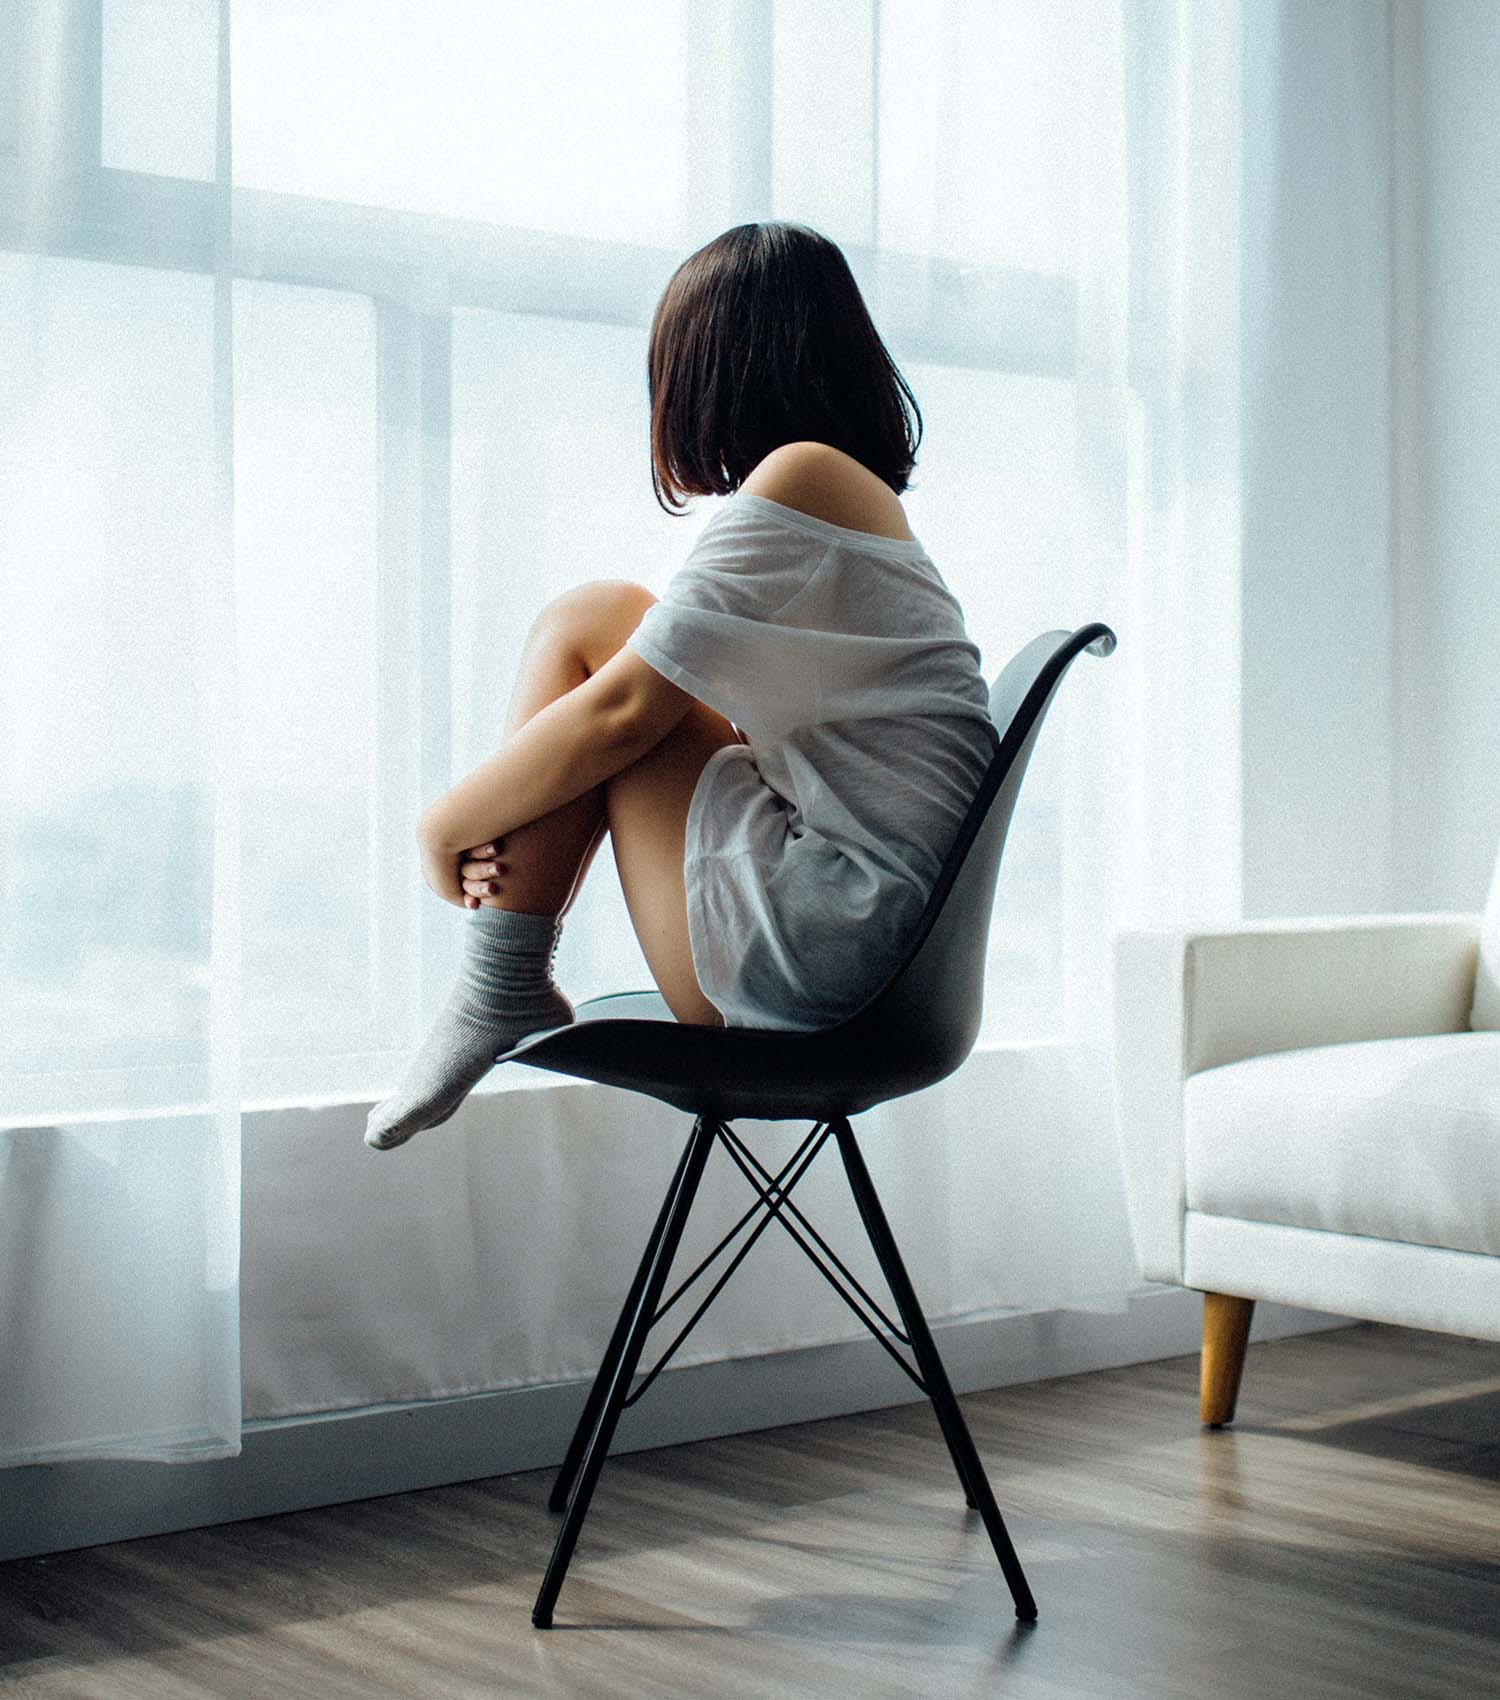 Girl with anxiety and sadness holding legs sitting on chair alone gazing out the window